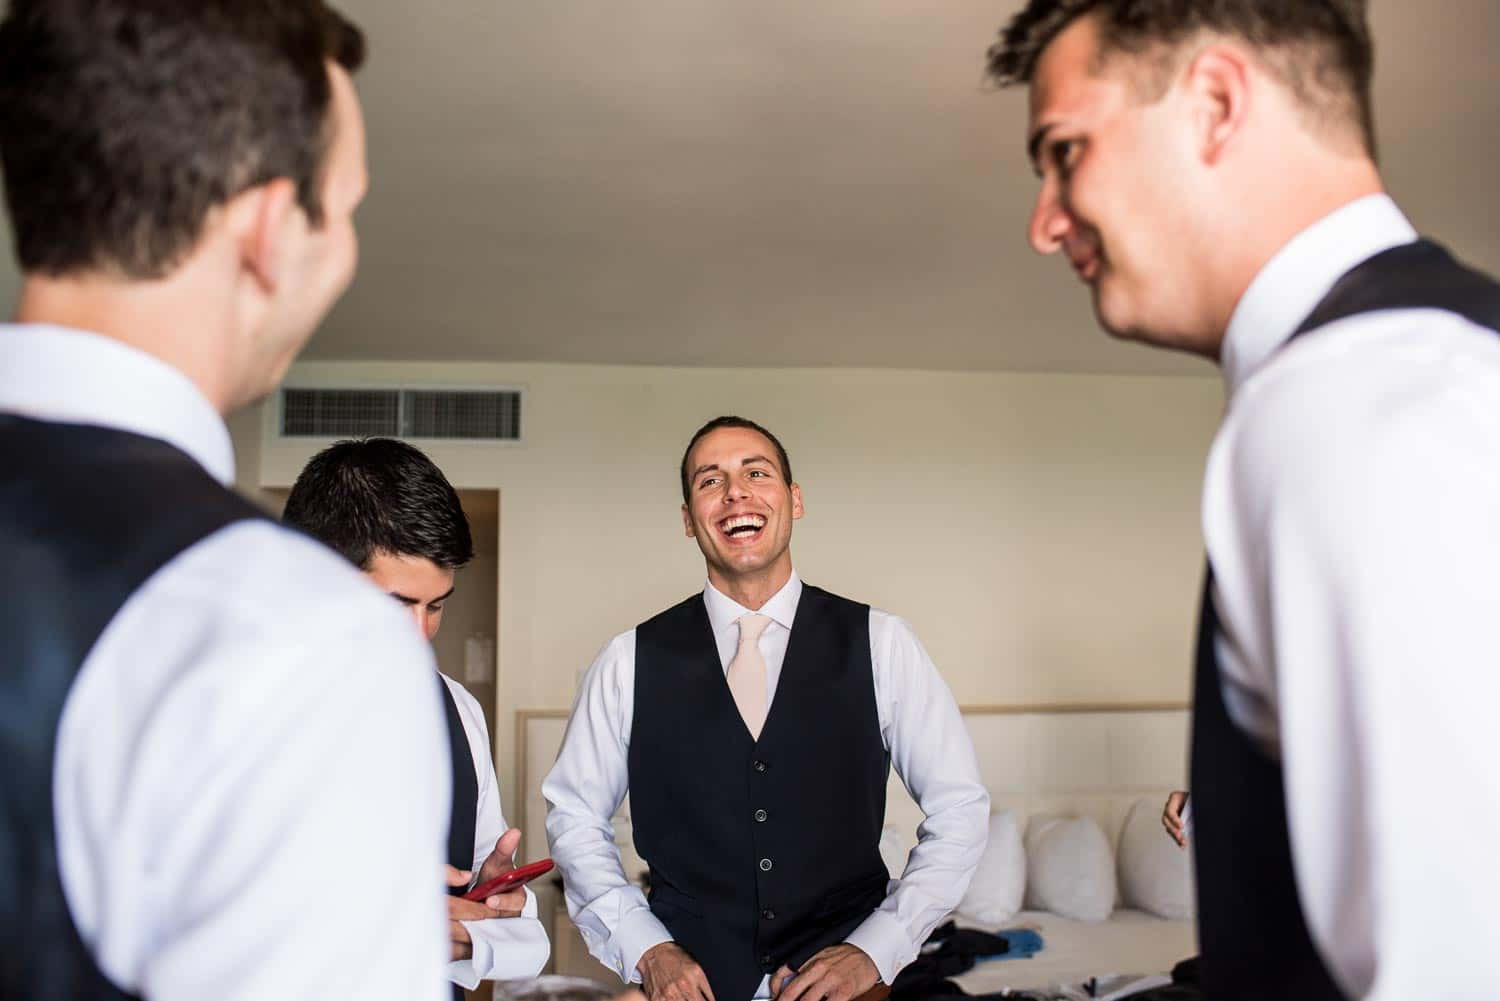 Groomsman laughing in their hotel room